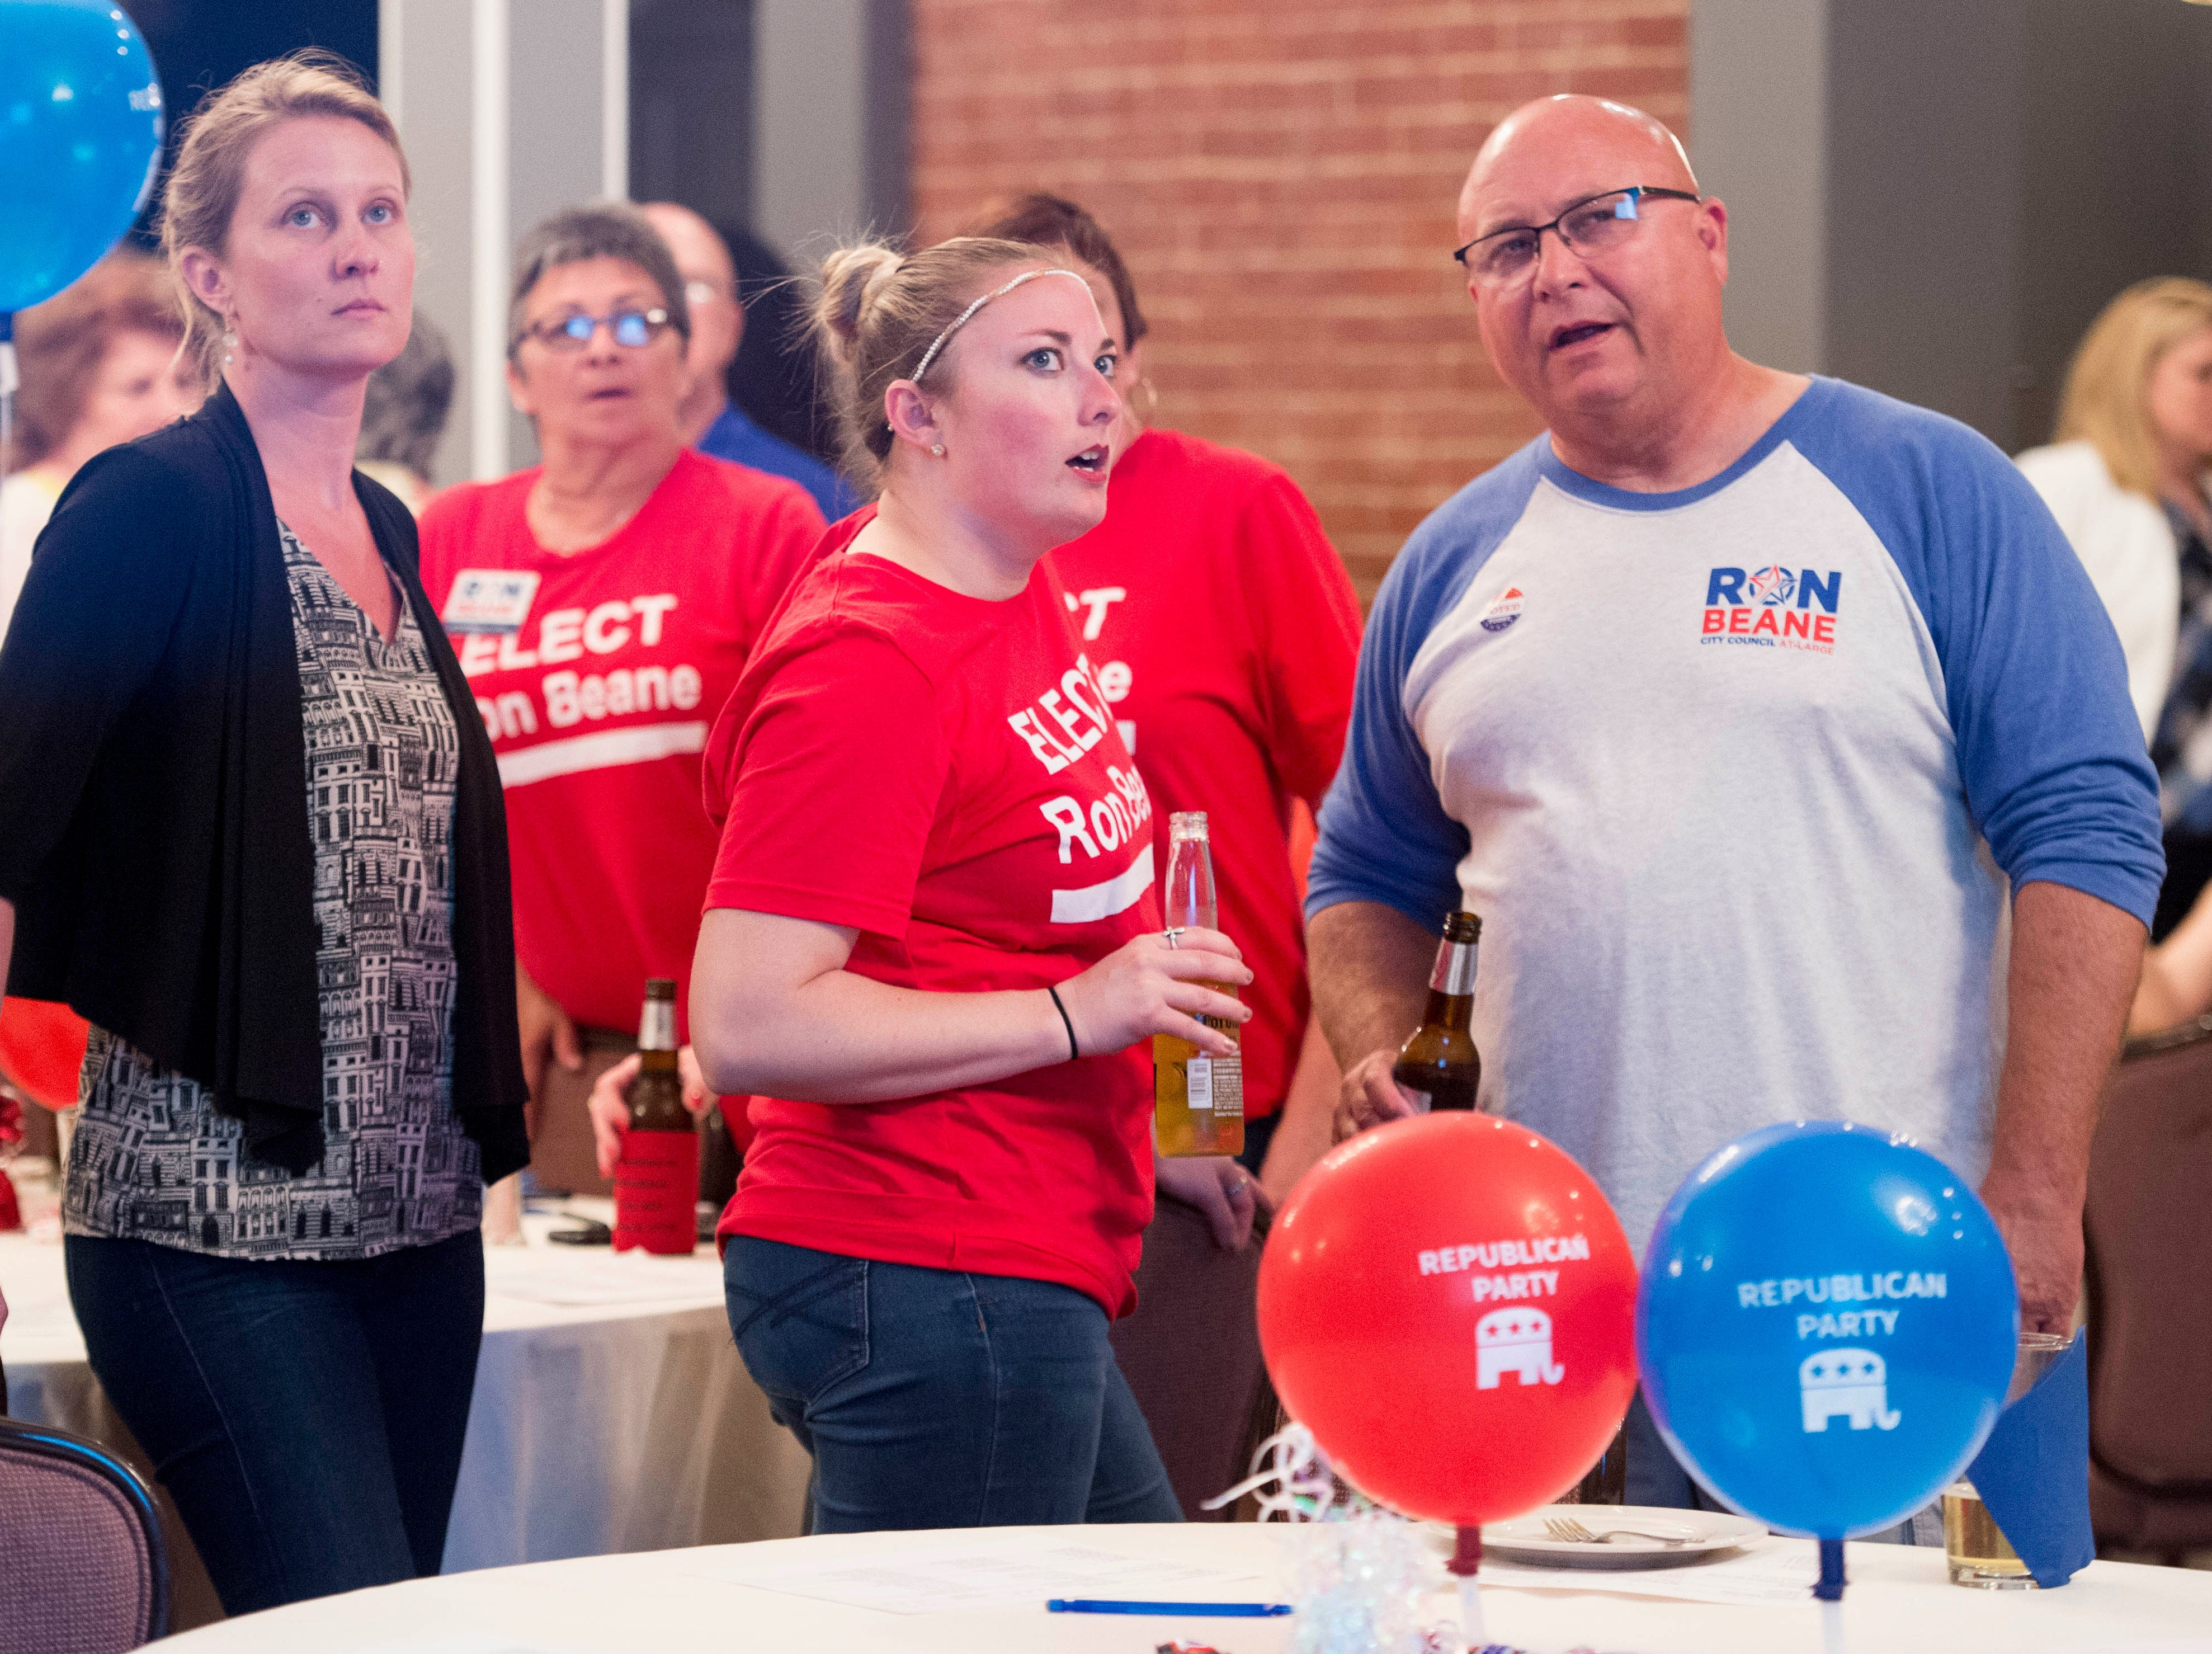 City council at-large candidate Ron Beane (R) supporters Shannon Begeman, left, Holly Dallmier, middle, and Allen Woodruff, right watch primary results update Tuesday, May 7, 2019.